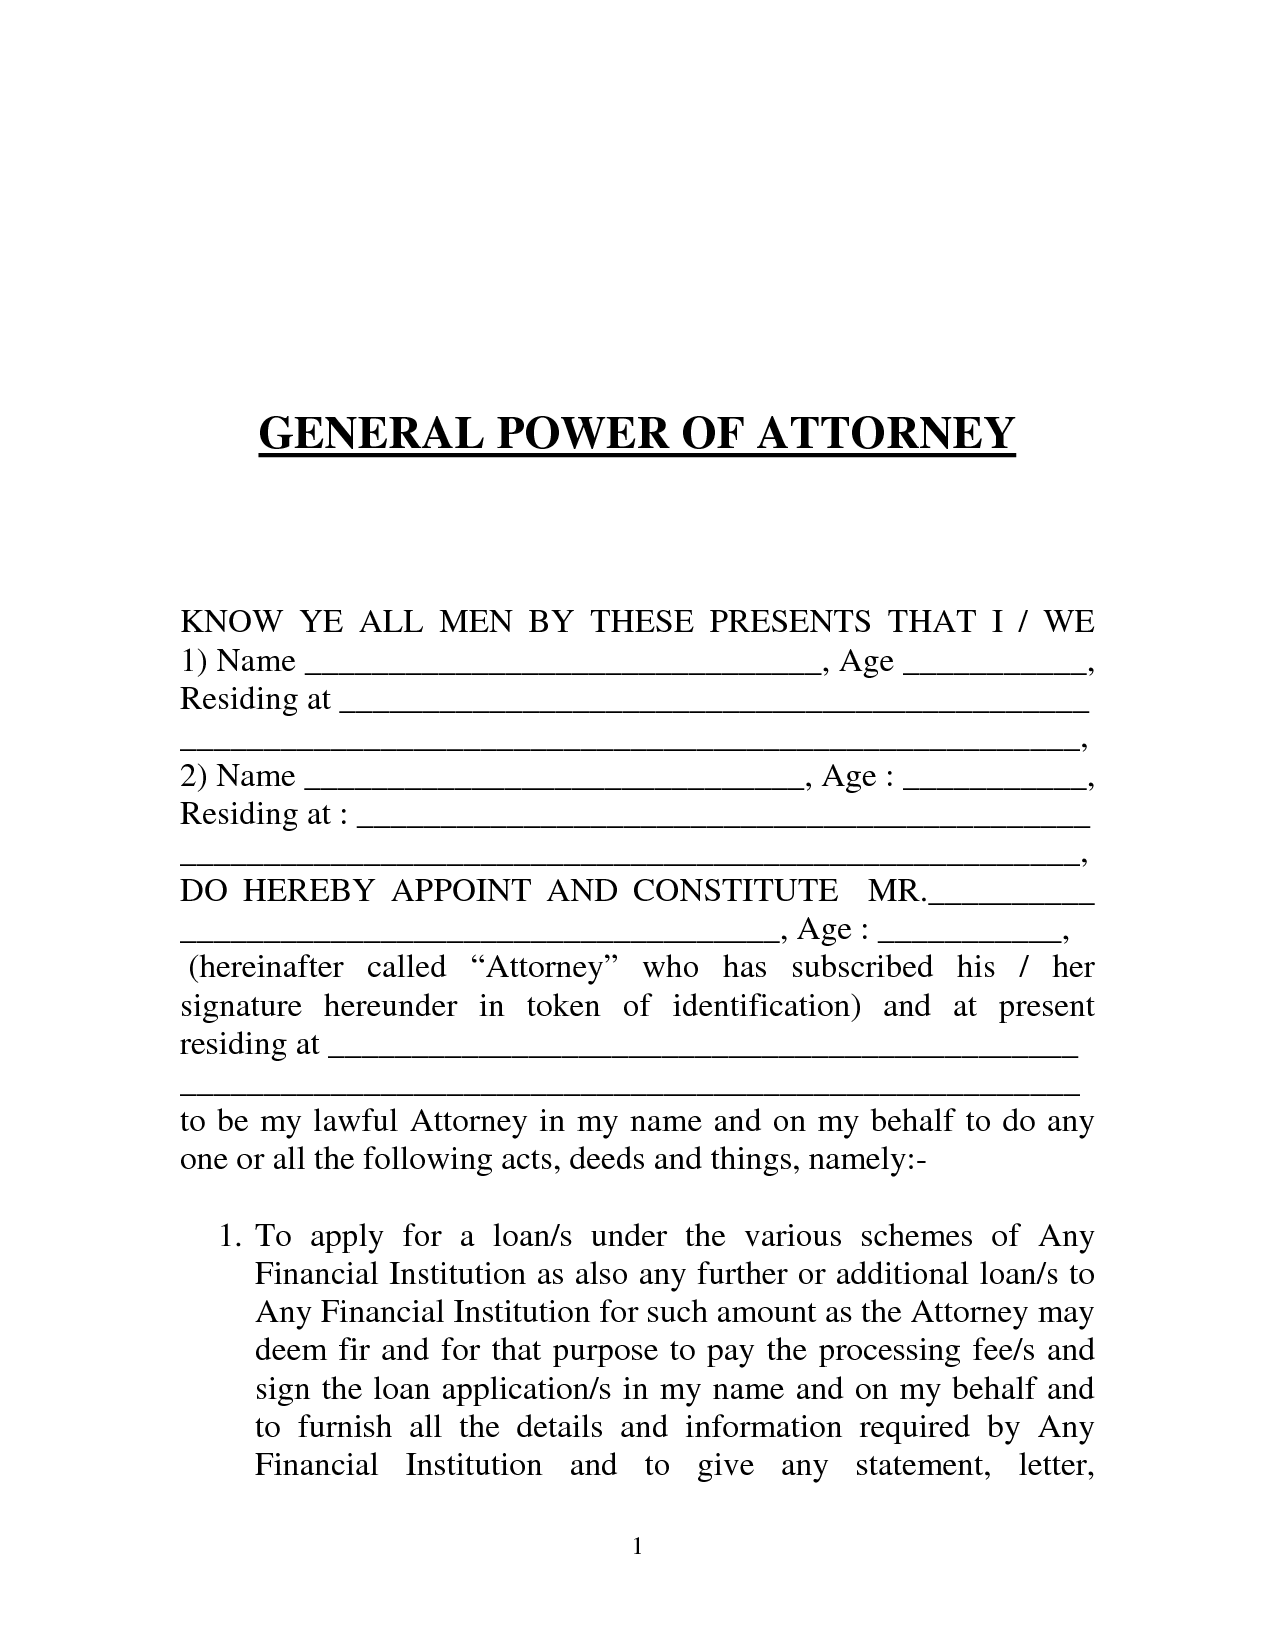 General power of attorney form india by prettytulips letter of general power of attorney form india by prettytulips letter of attorney spiritdancerdesigns Image collections